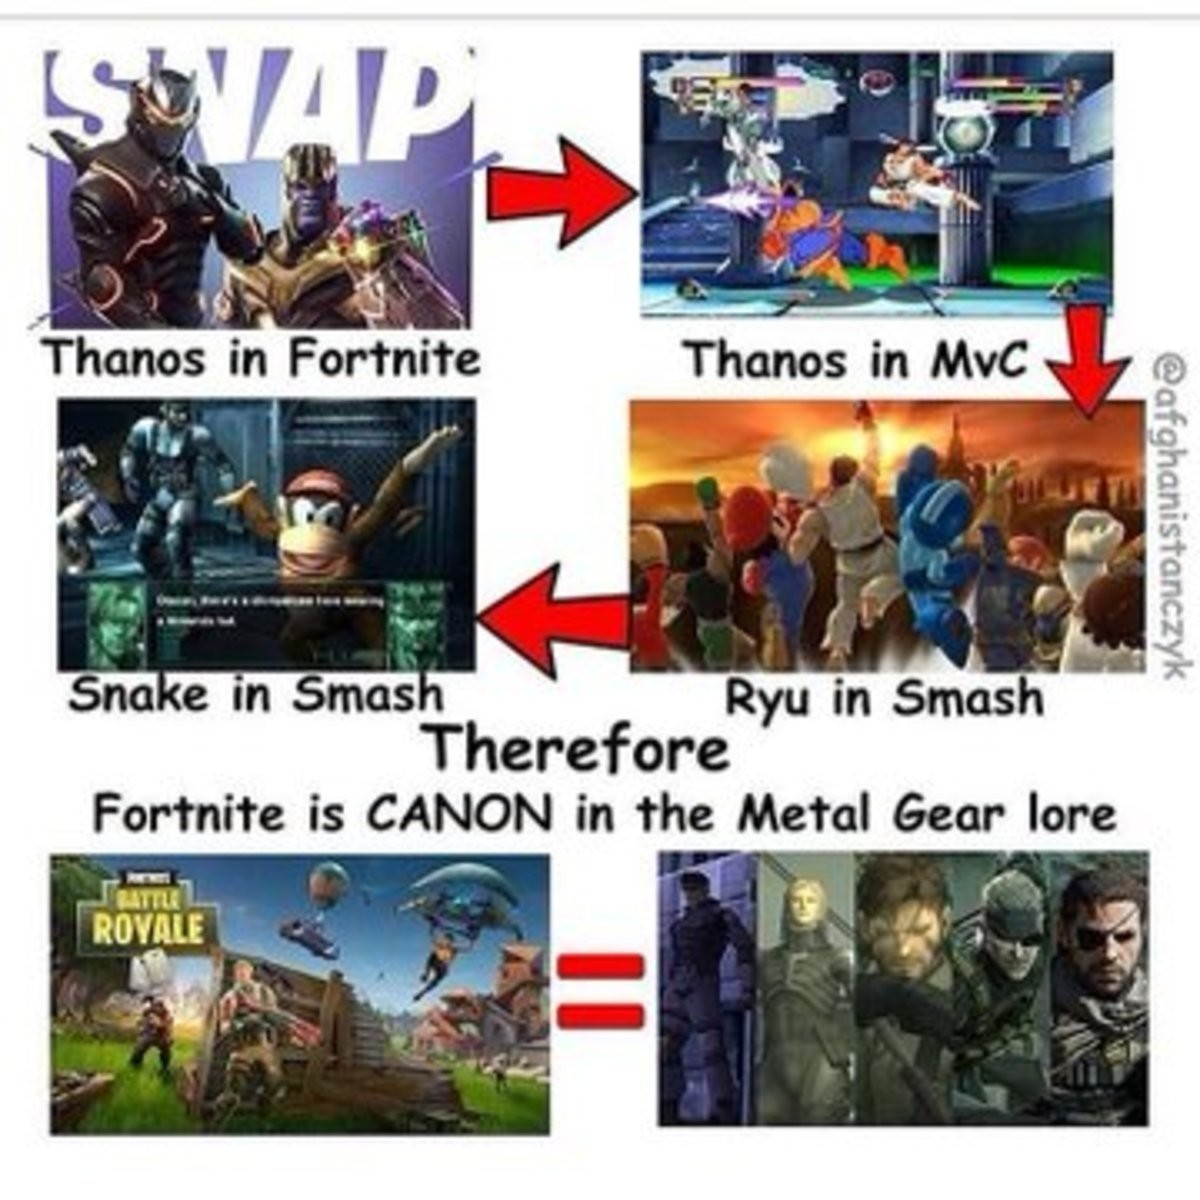 The Truth. .. Smash canon is they are a bunch of toys and the fights are imaginary. Breaks the connections